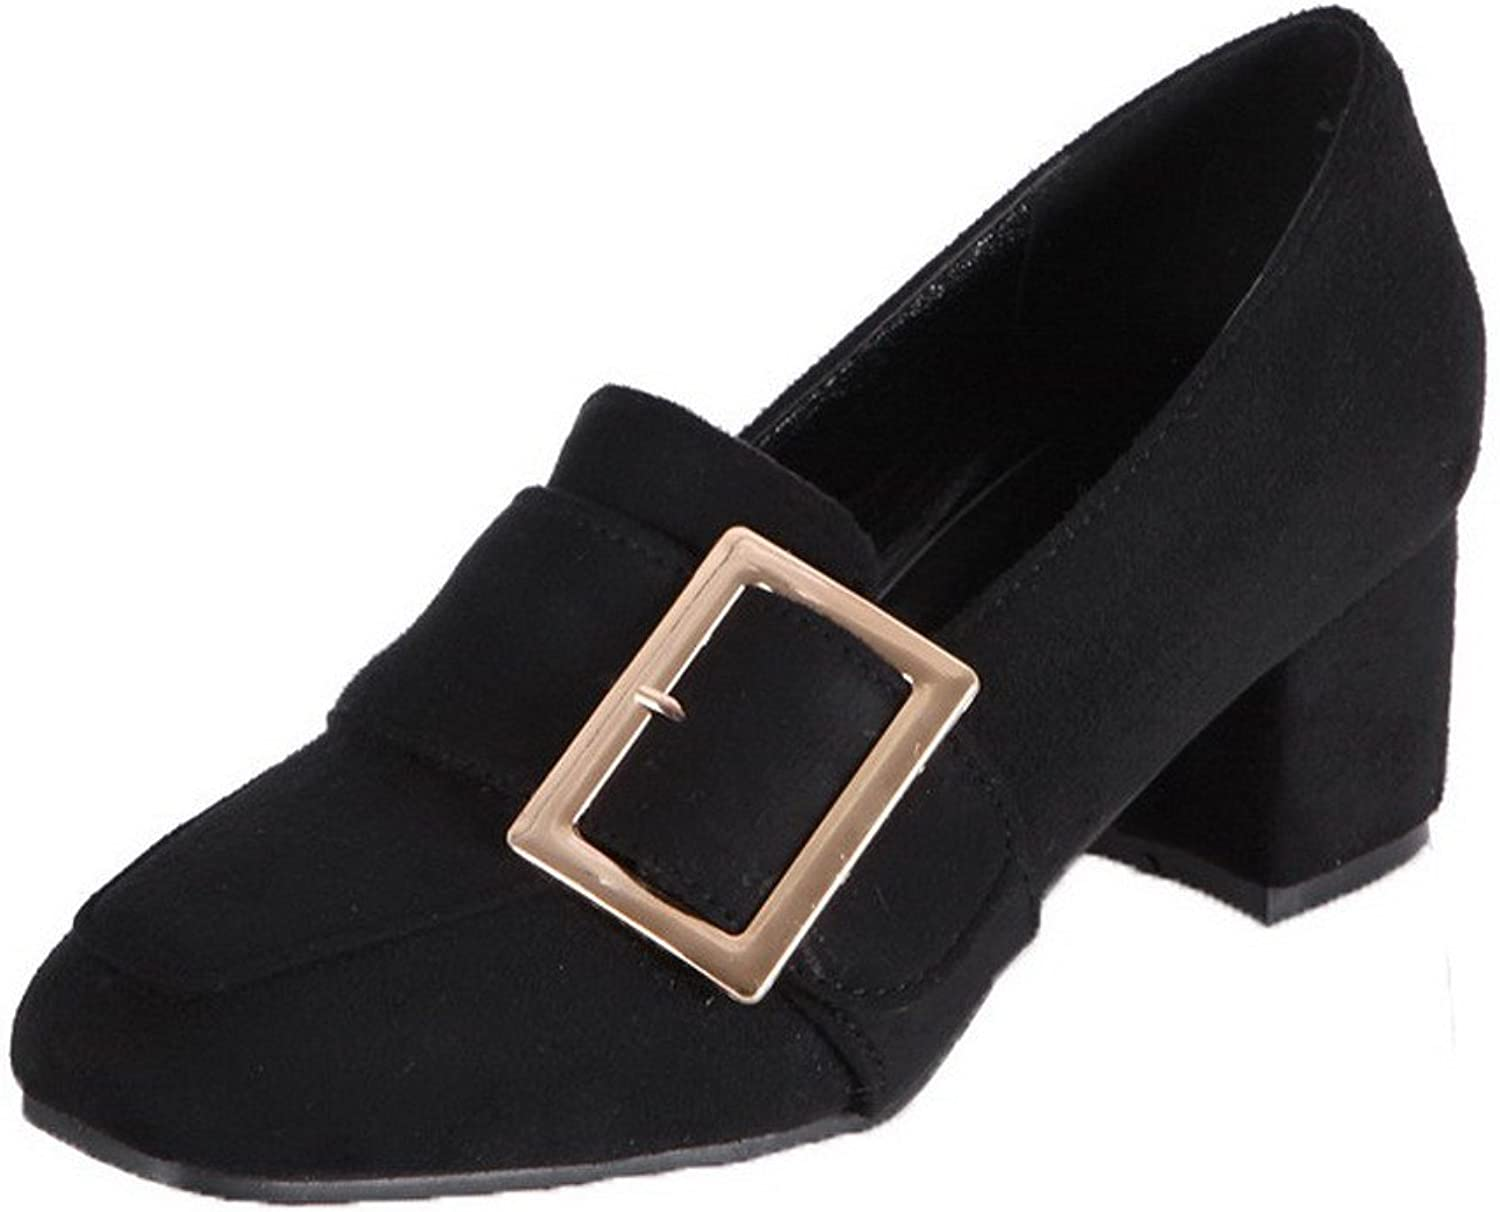 WeiPoot Women's Closed-Toe Kitten-Heels Pull-On PU Solid Pumps-shoes